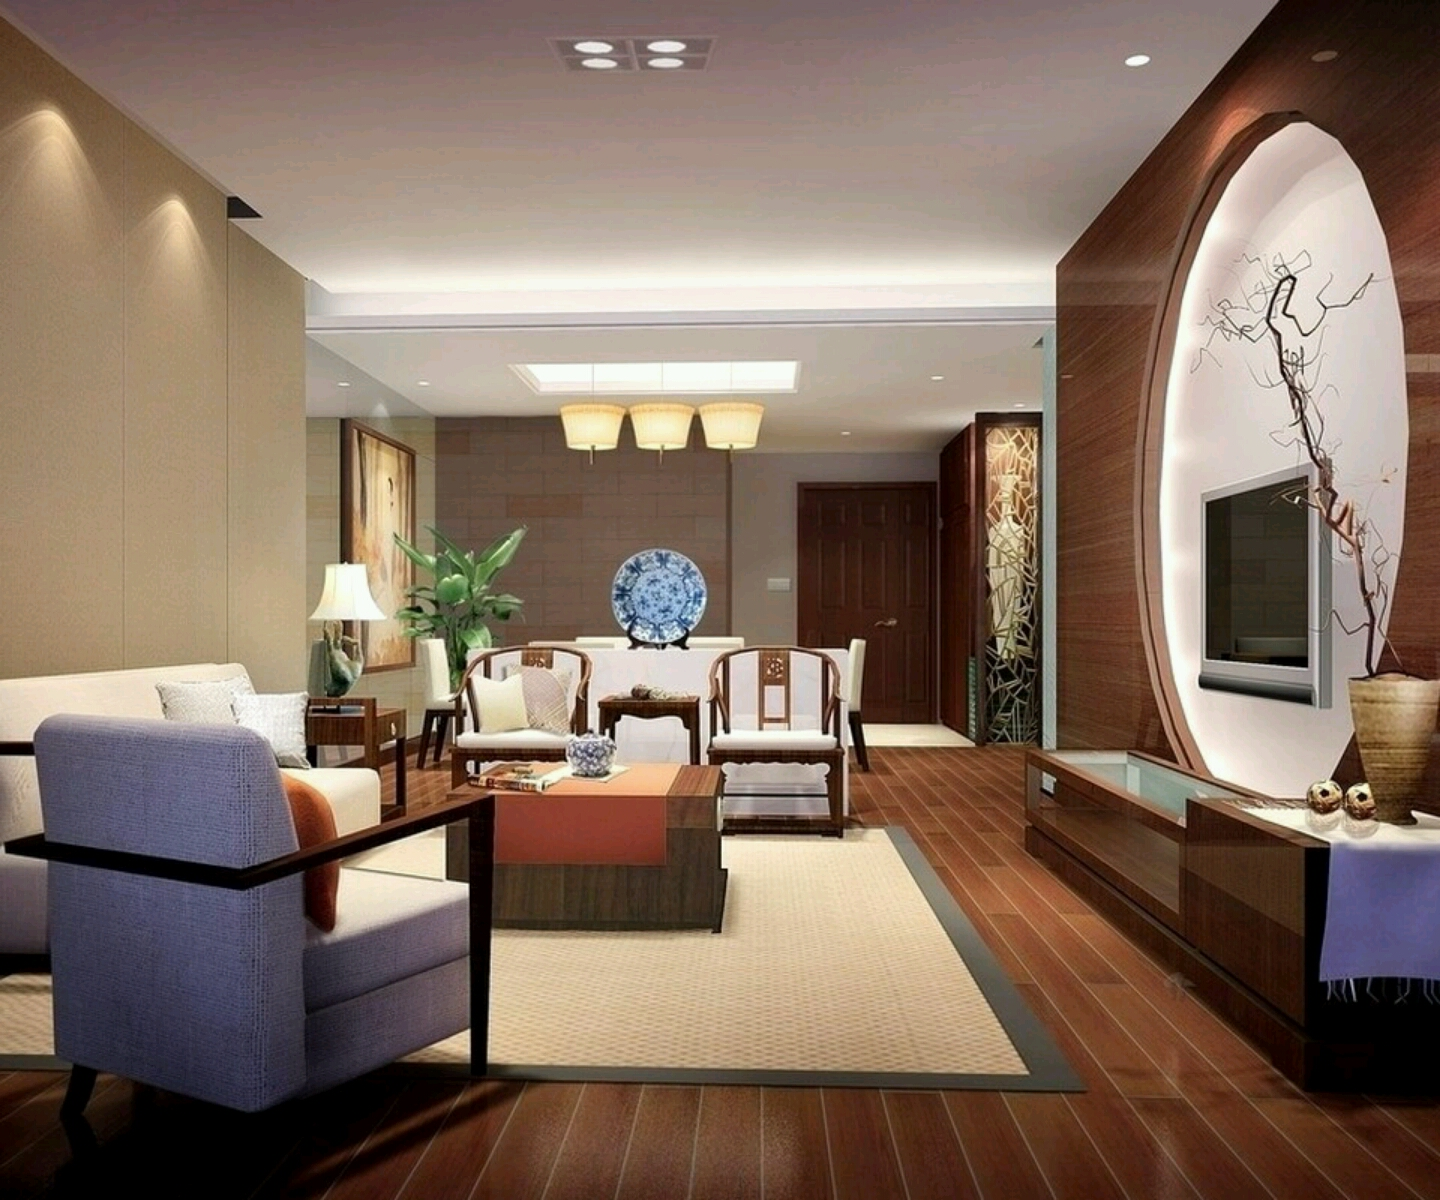 Luxury homes interior decoration living room designs ideas Interior decoration ideas for small living room